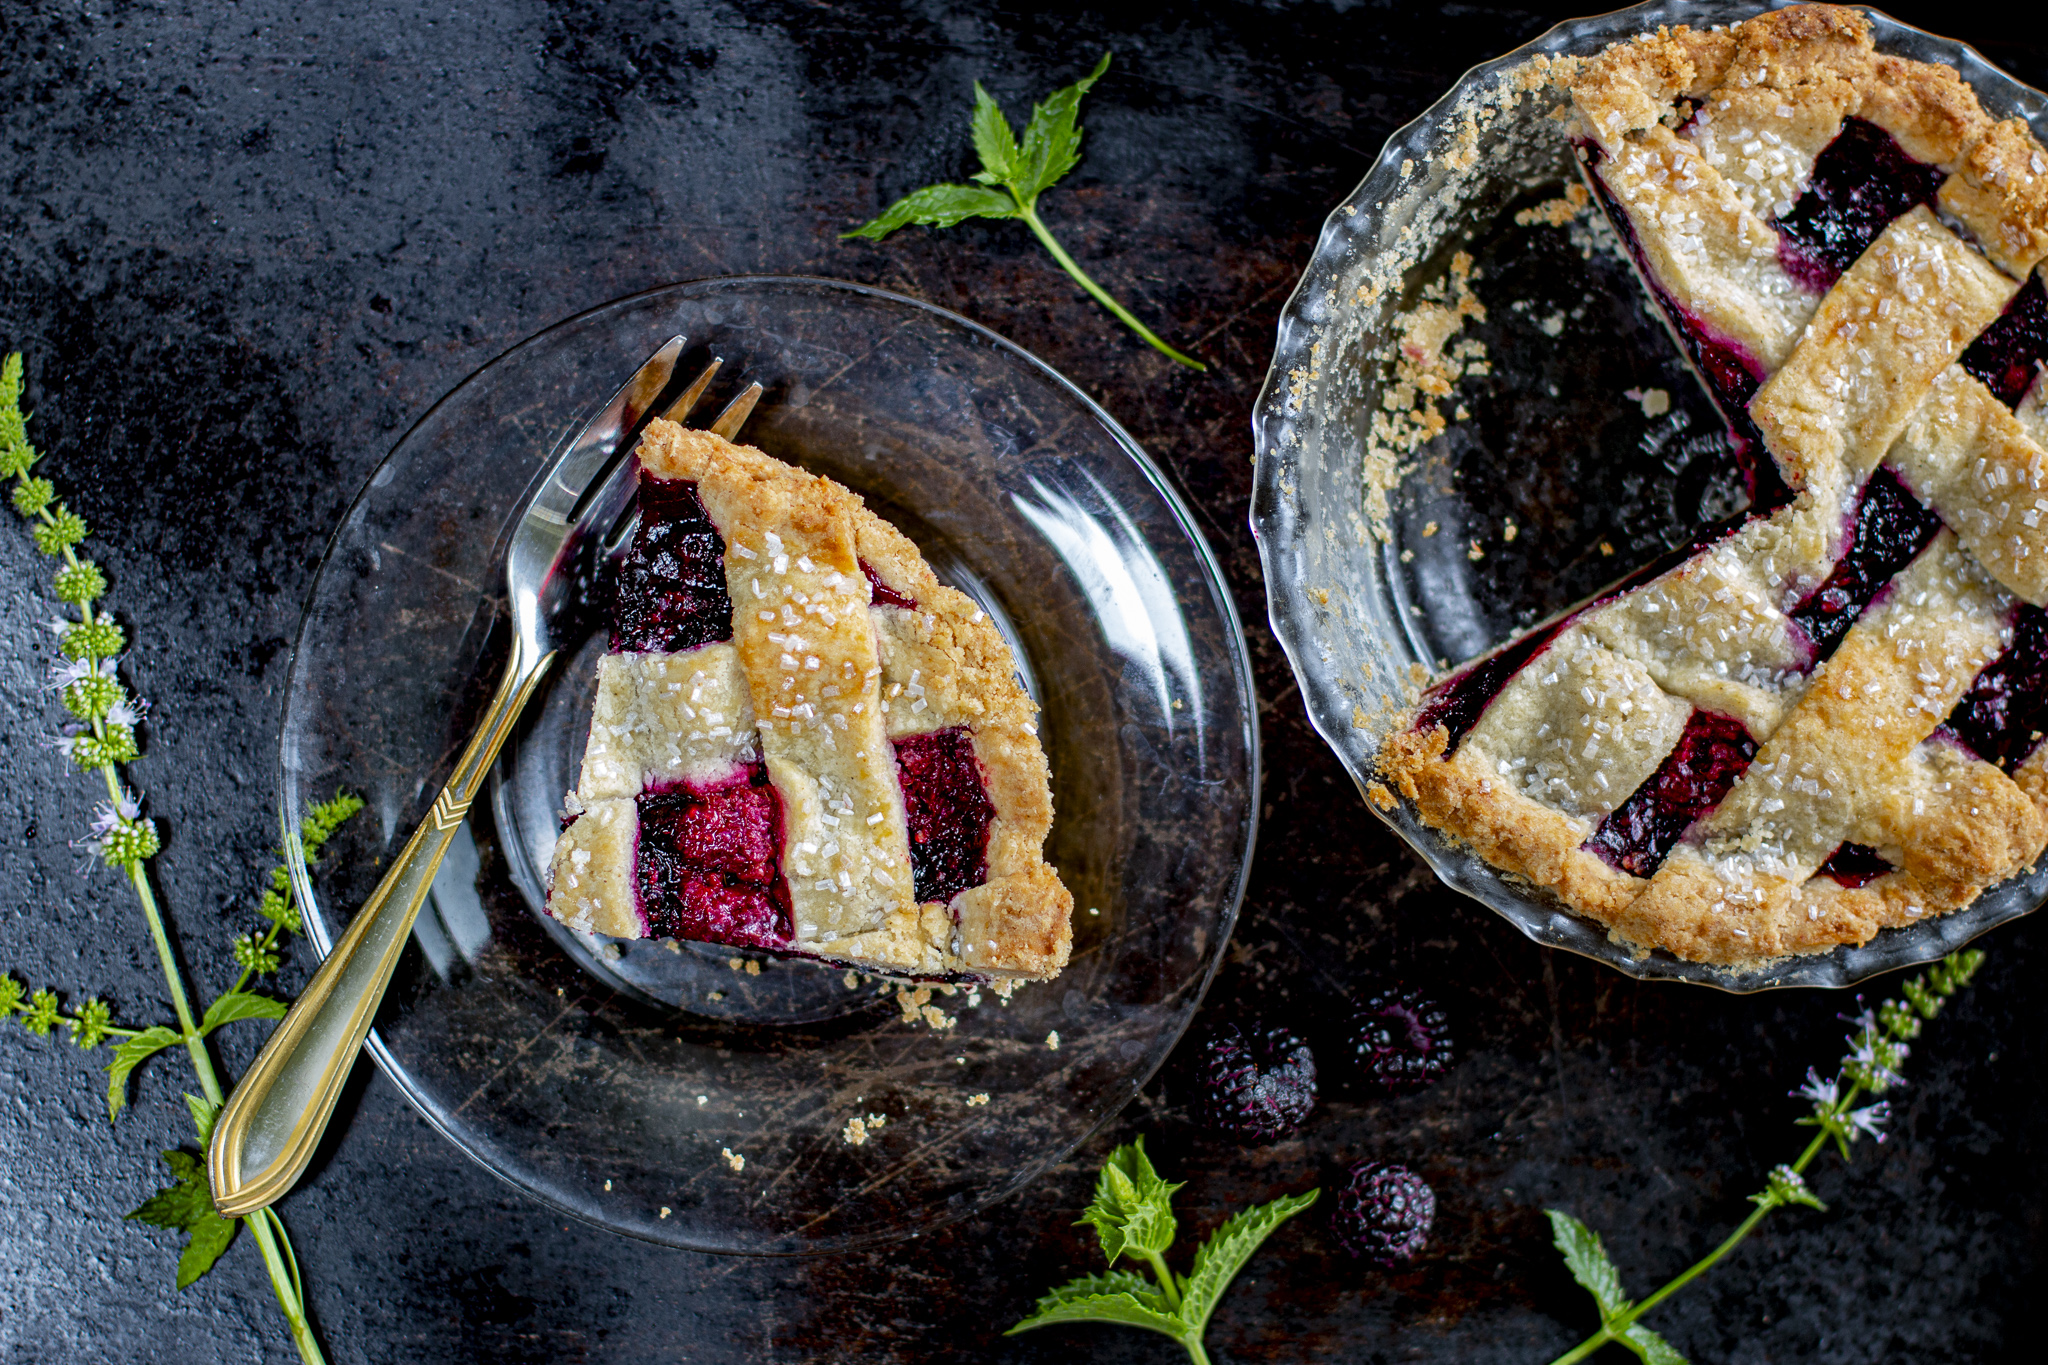 Fabulous Black Raspberry Pie!